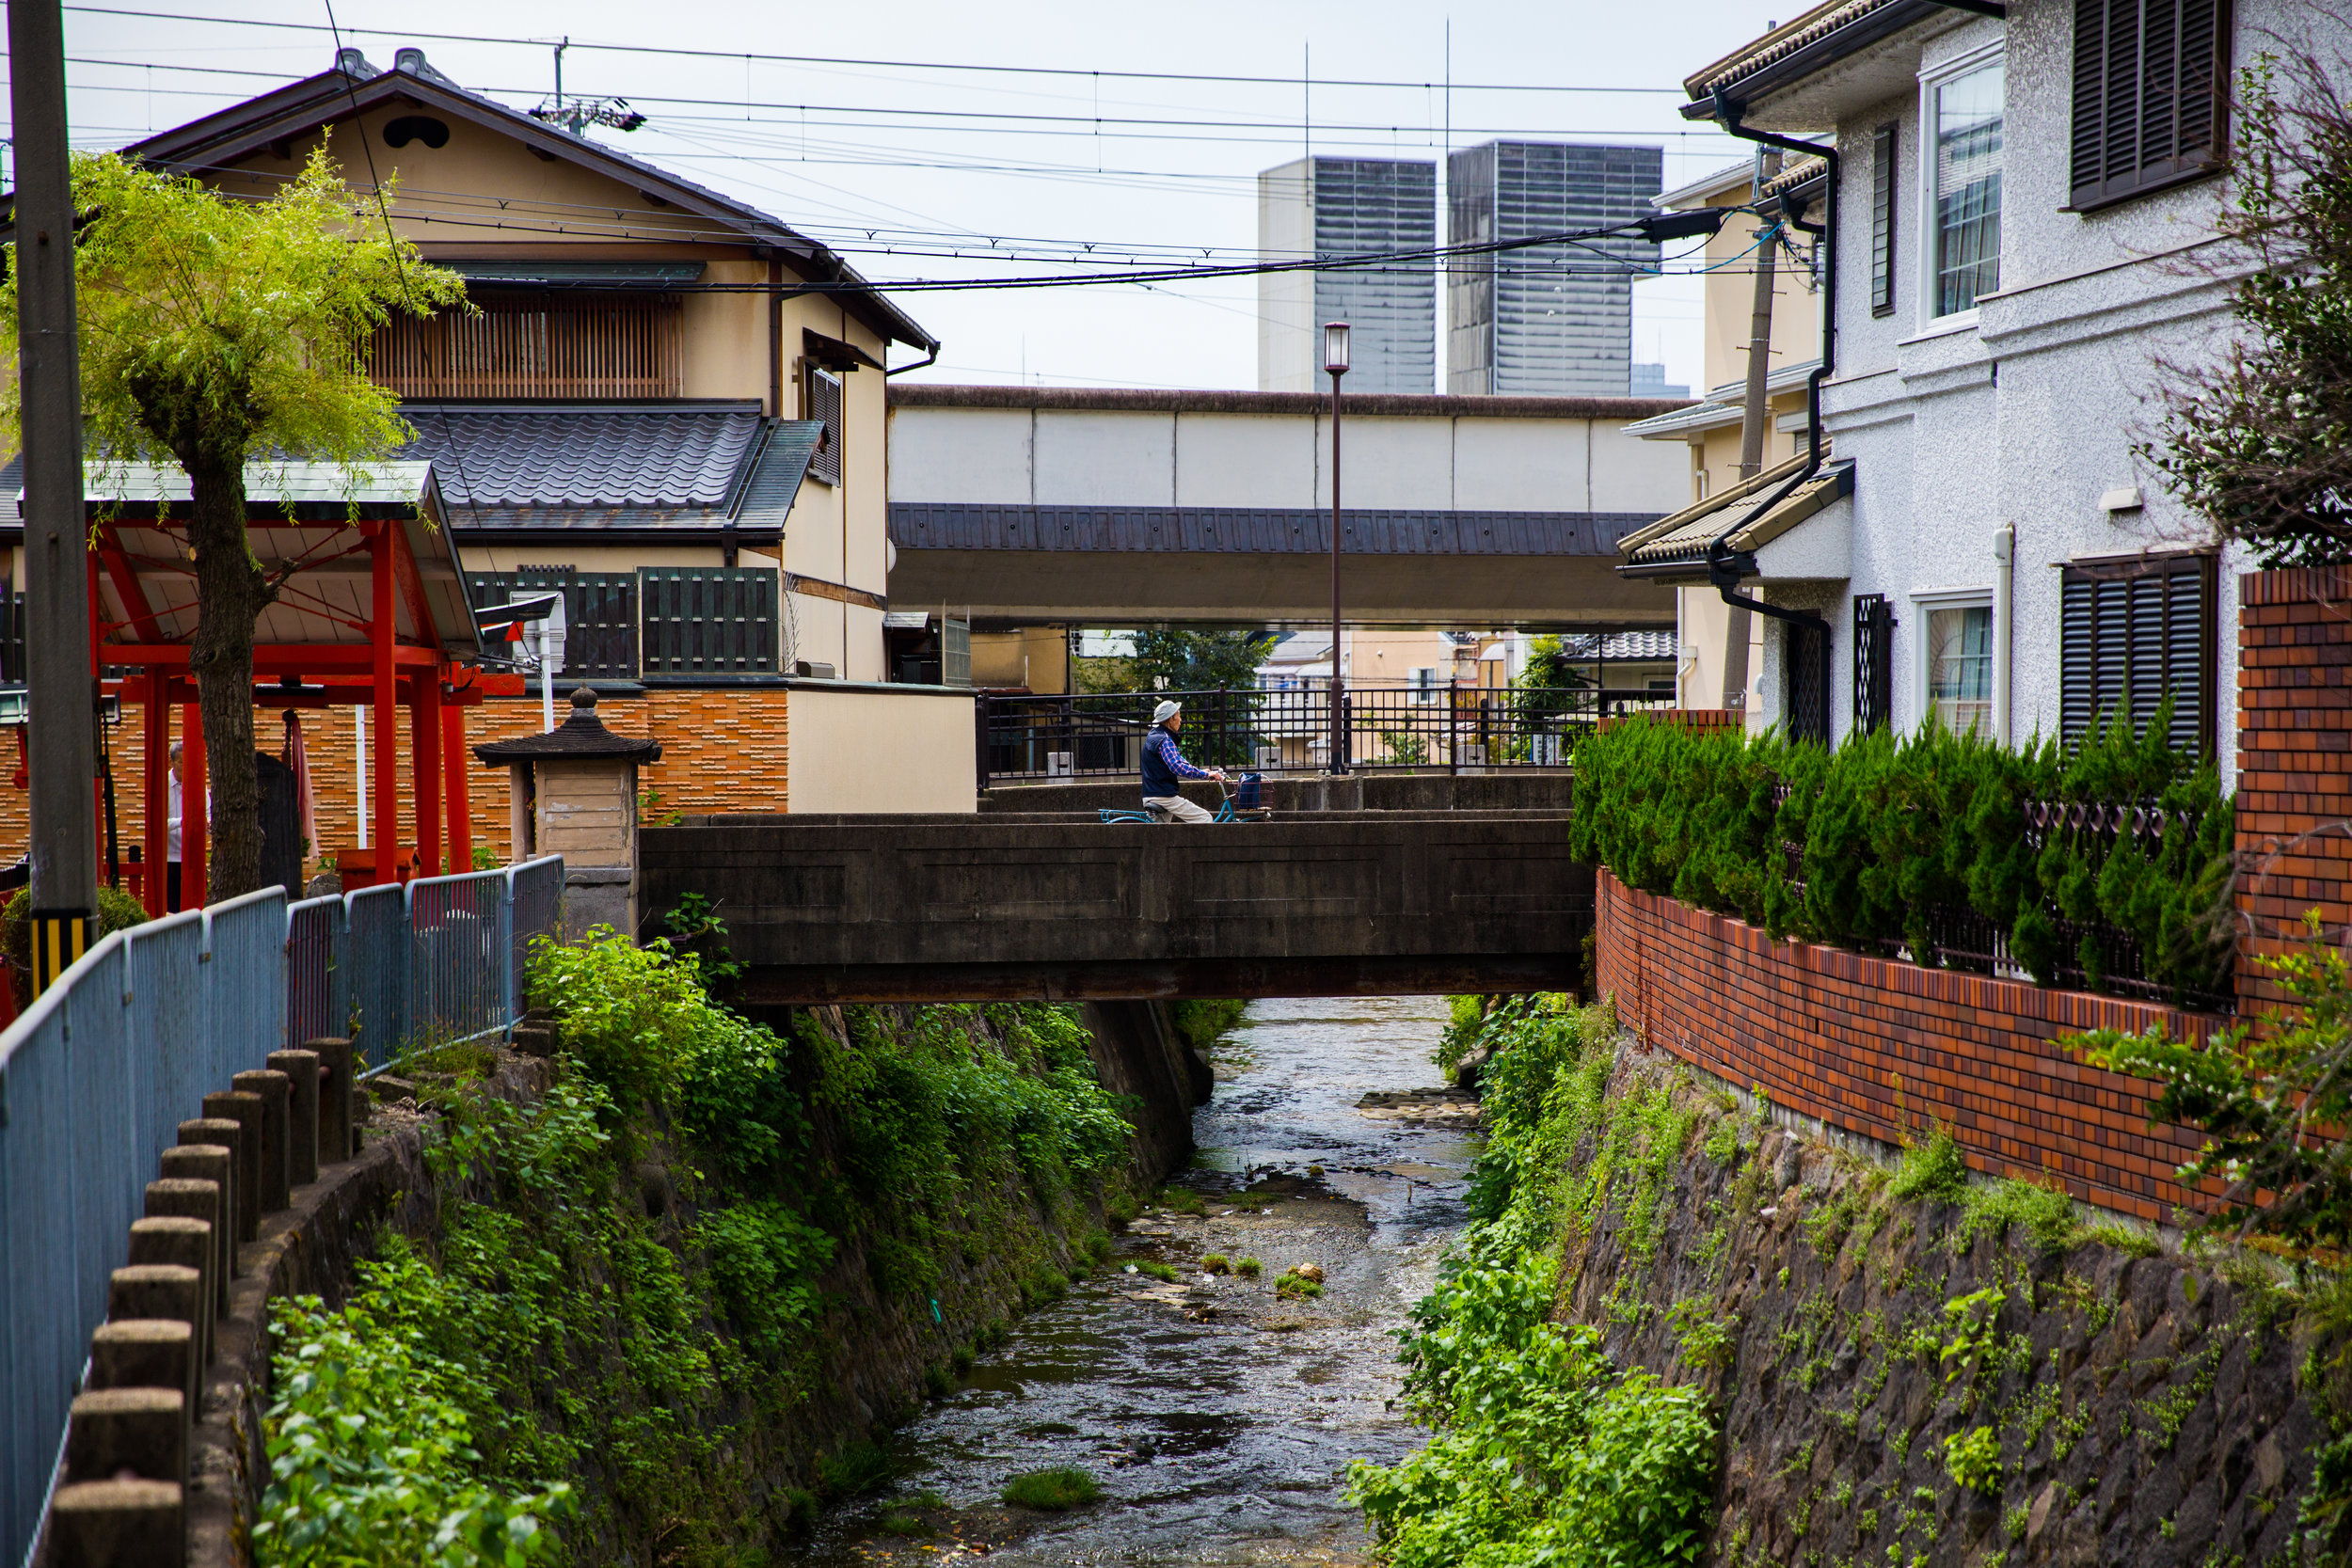 Kyoto's streets wind around shines built hundreds ago in a harmonious manner.